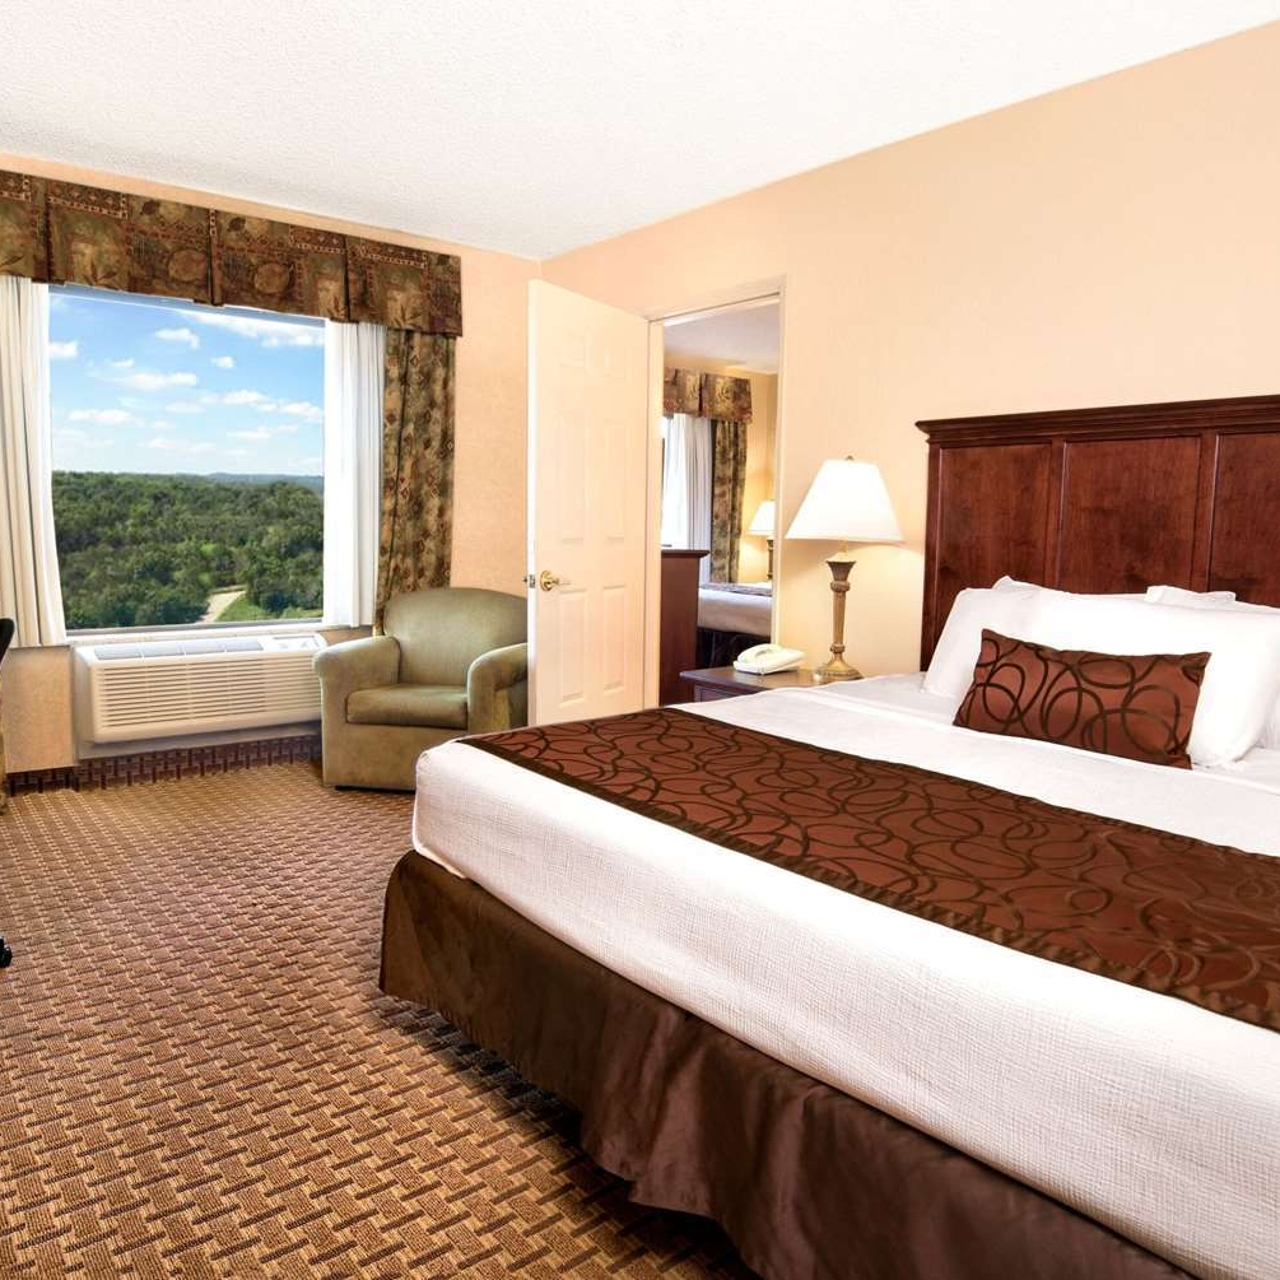 Grand Plaza Hotel Branson United States Of America At Hrs With Free Services